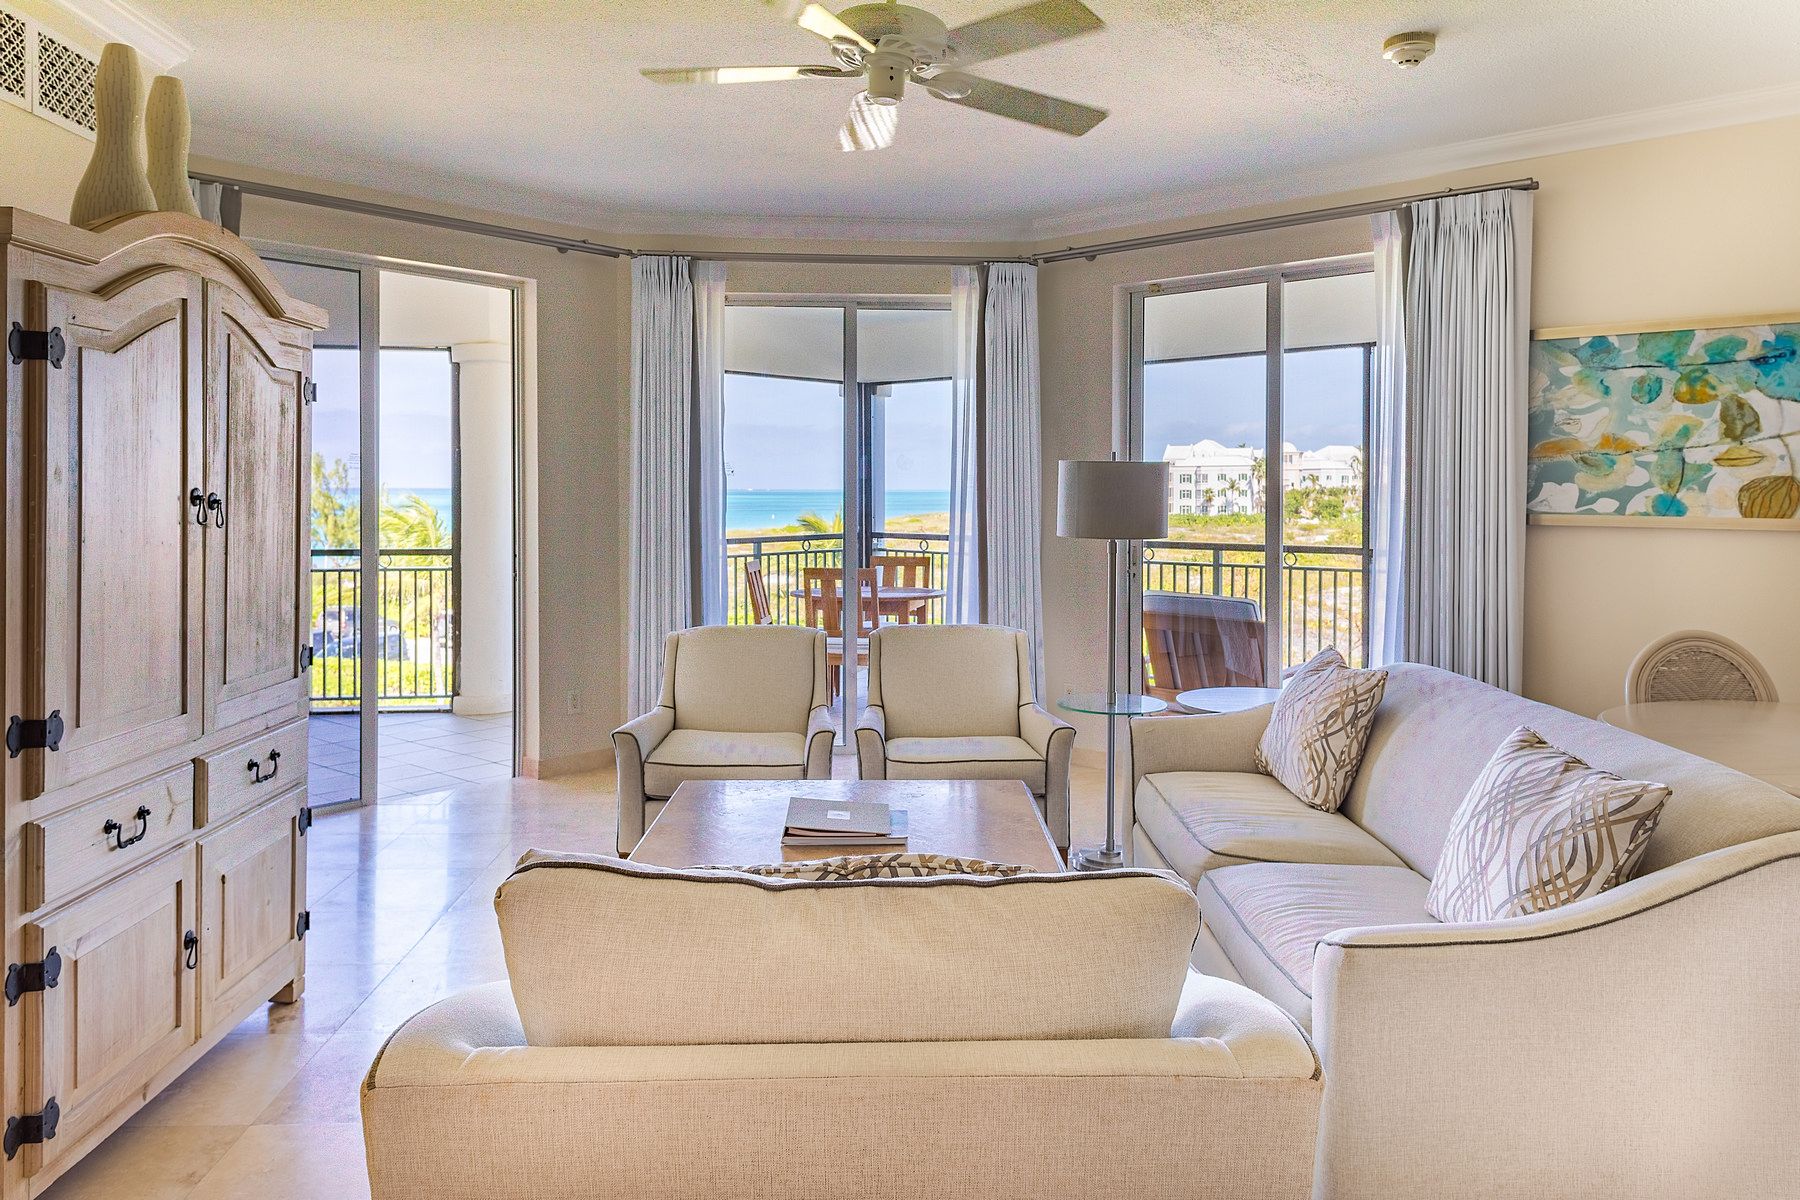 Condominium for Sale at The Sands at Grace Bay - Penthouse Suite 3309.10 The Sands On Grace Bay, Grace Bay, Providenciales Turks And Caicos Islands